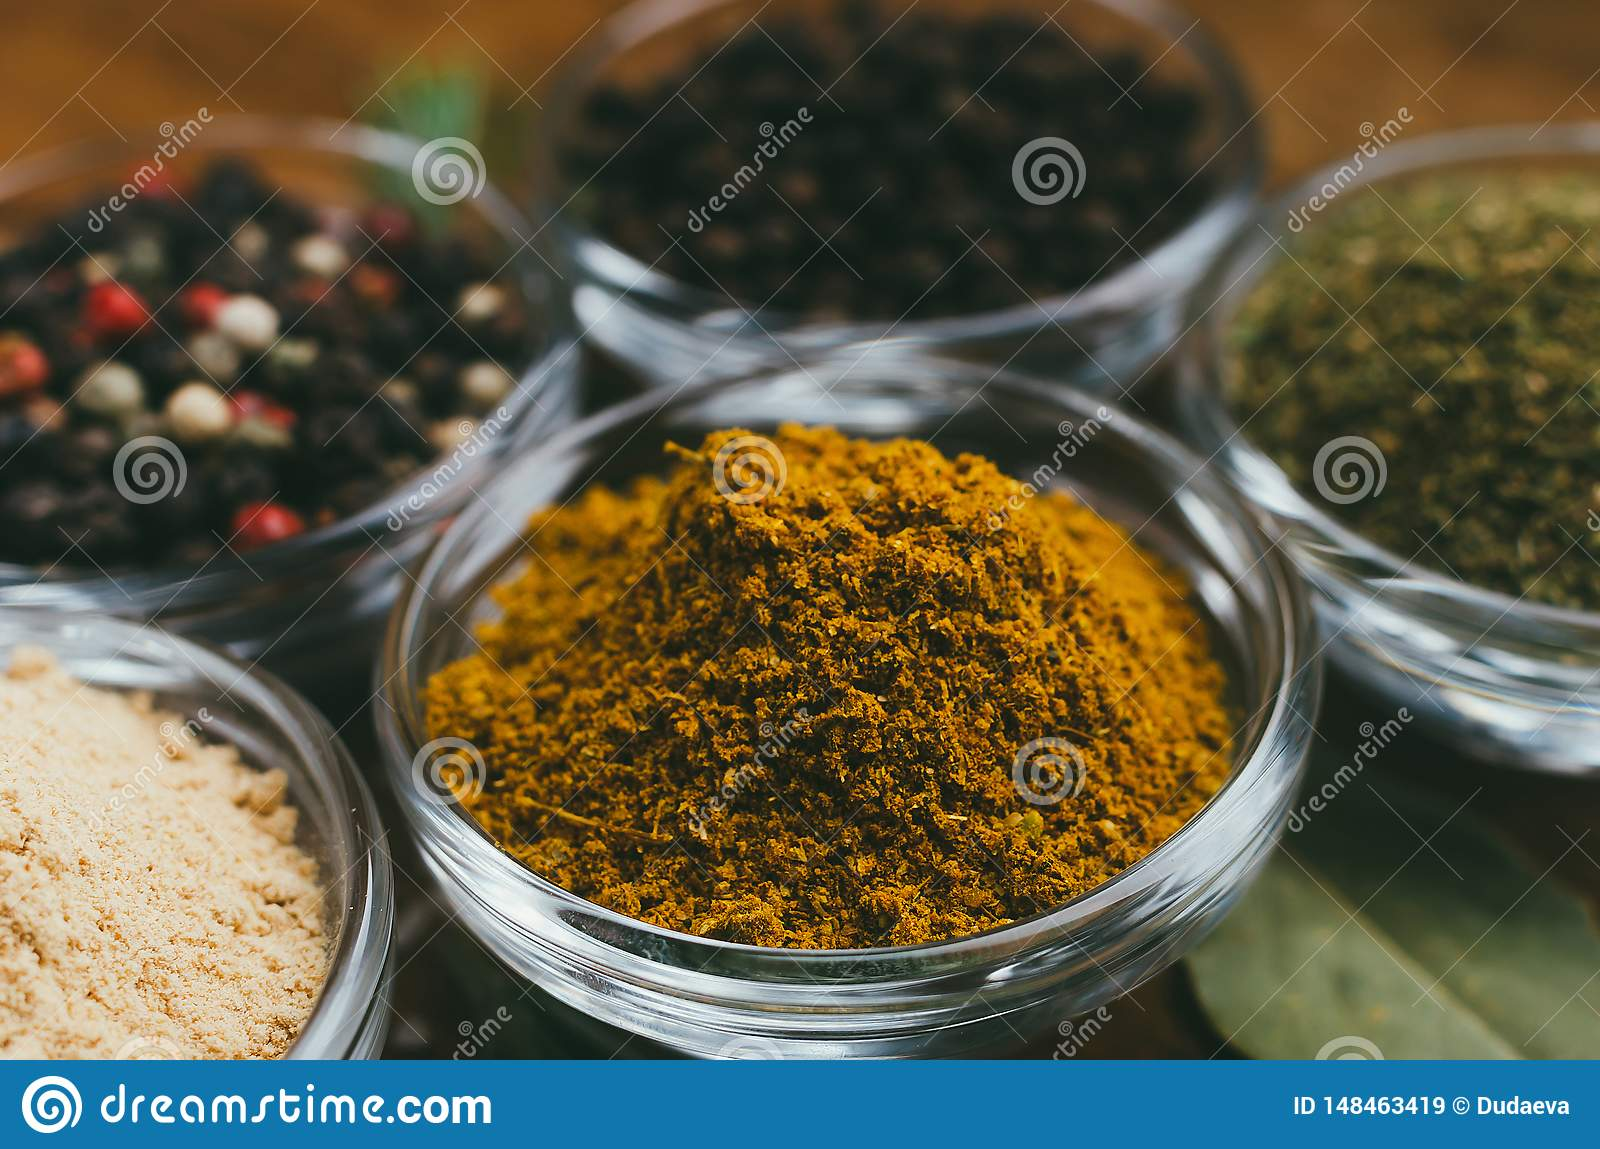 Variety of spices in round glass bowls - ground ginger, hops-suneli, kari, black pepper and mix